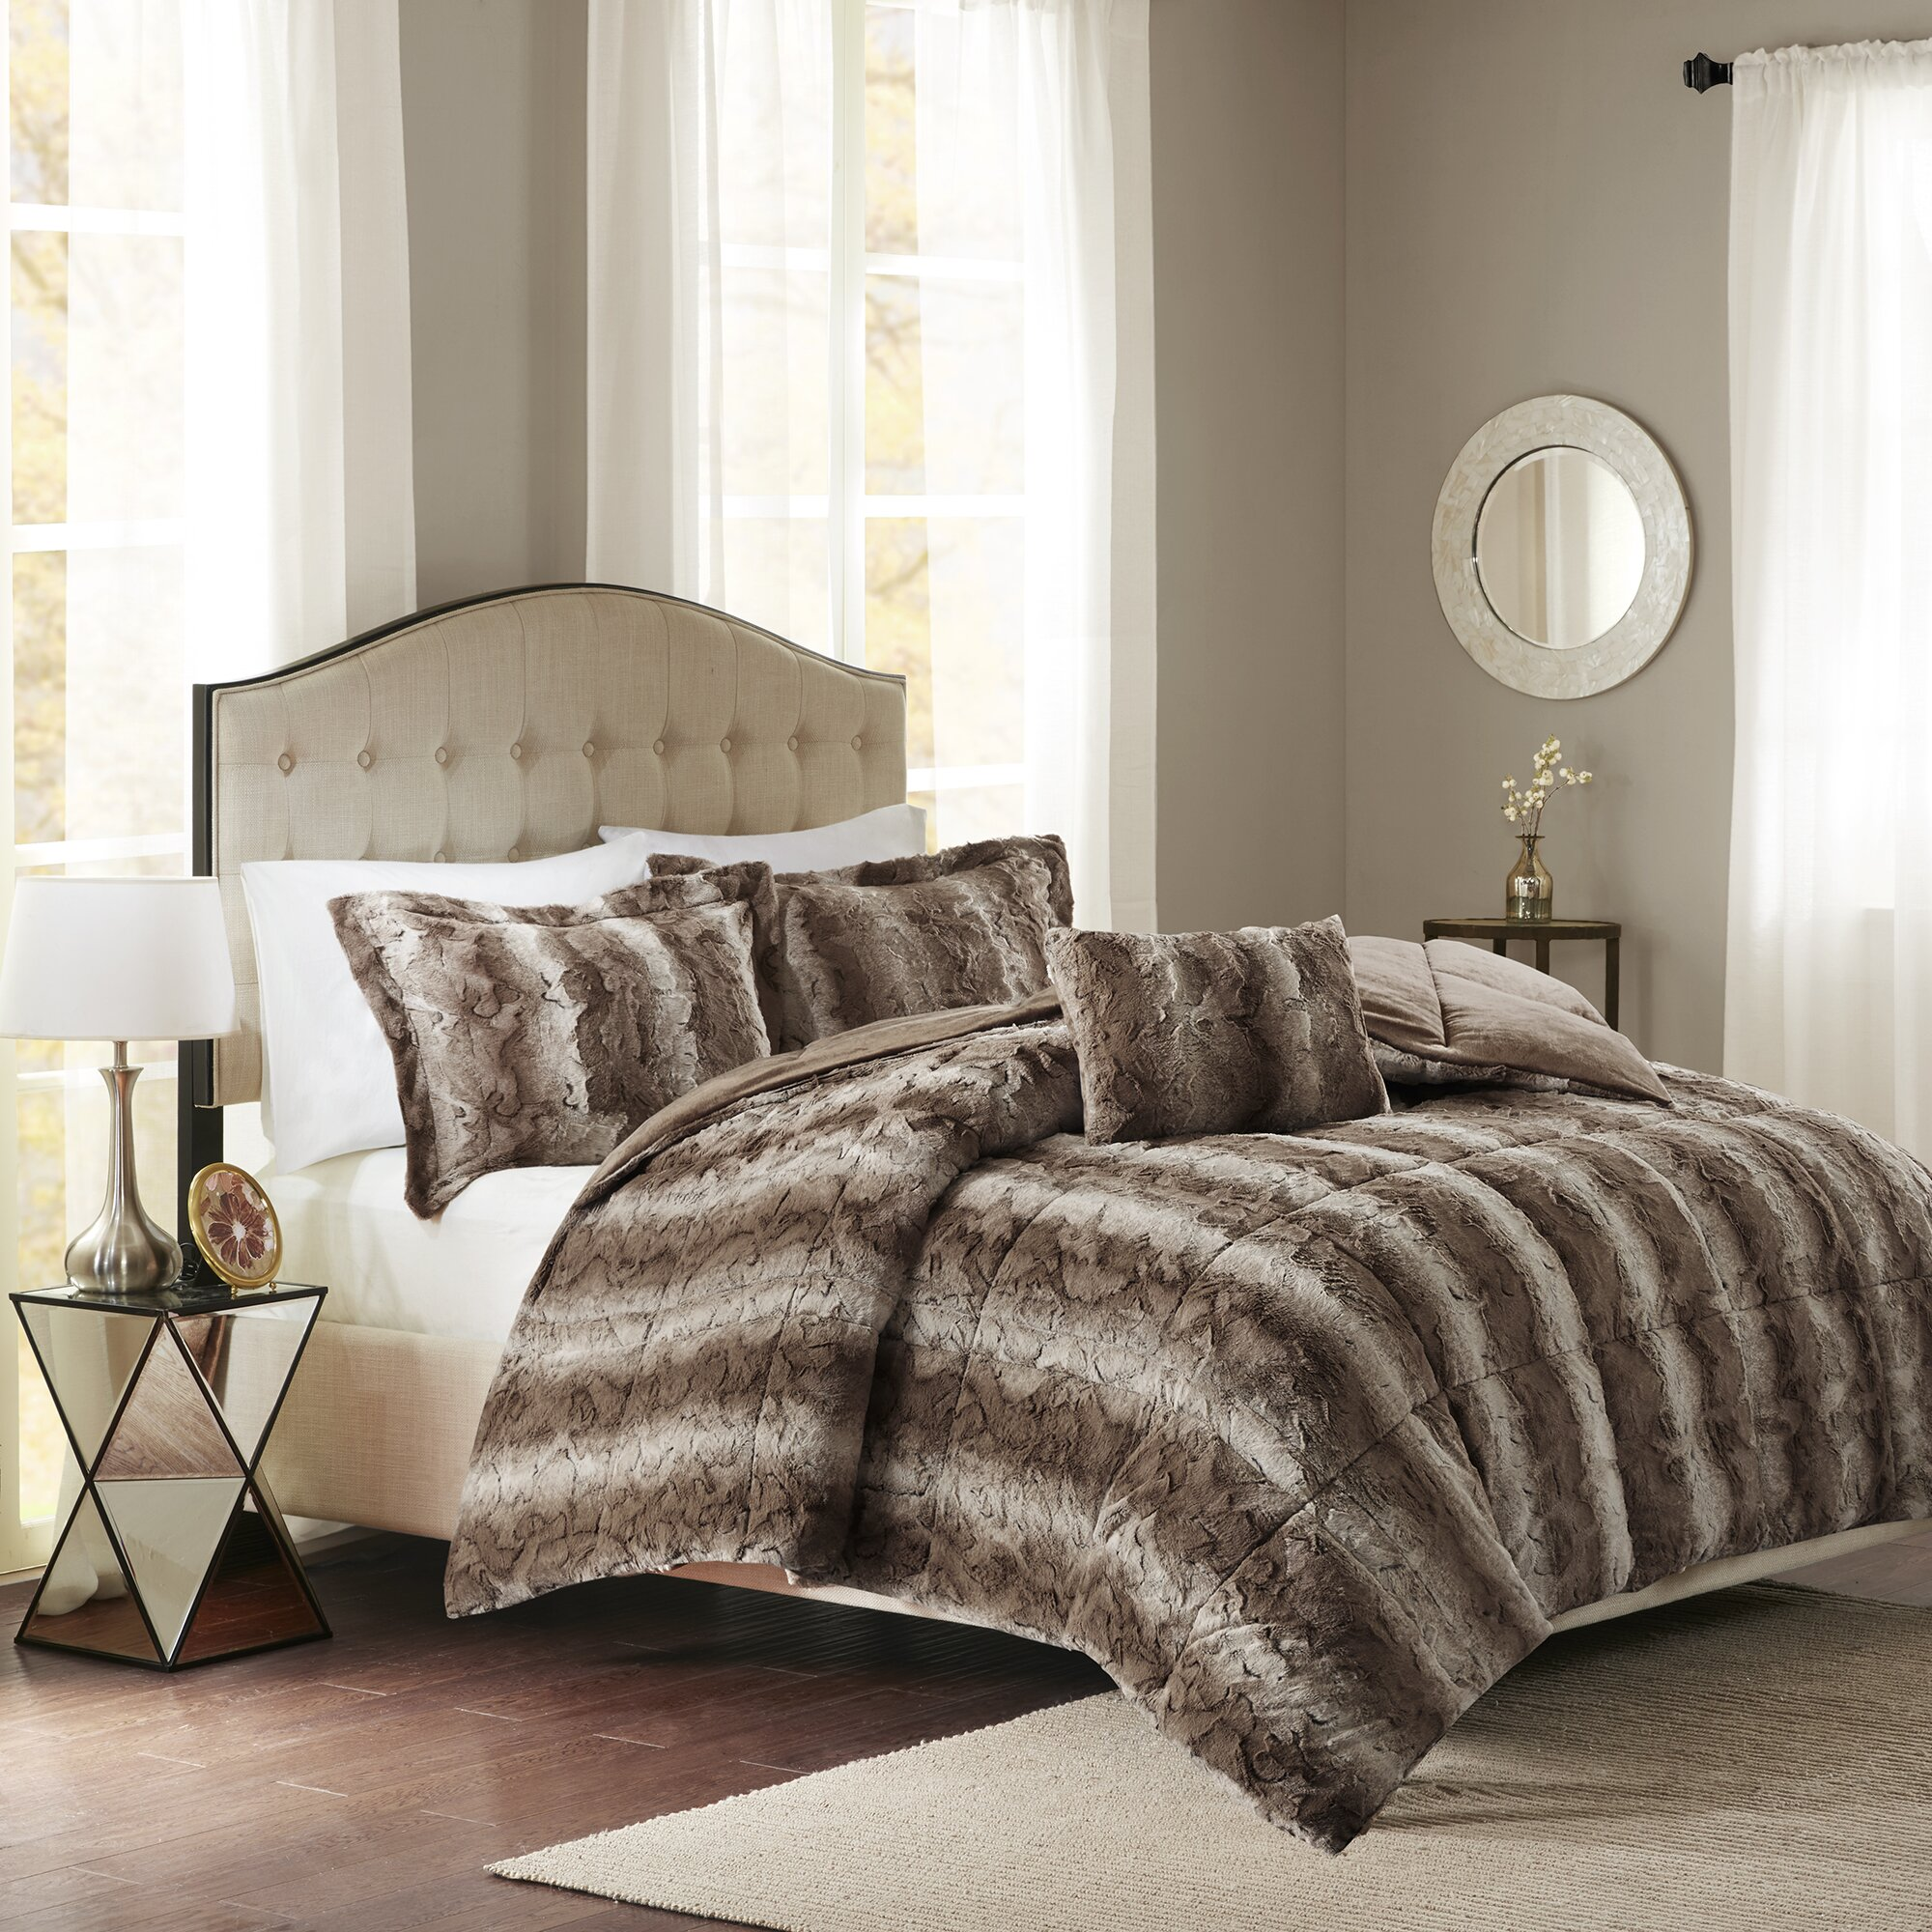 mercer41 morrison faux fur 4 piece comforter set reviews. Black Bedroom Furniture Sets. Home Design Ideas